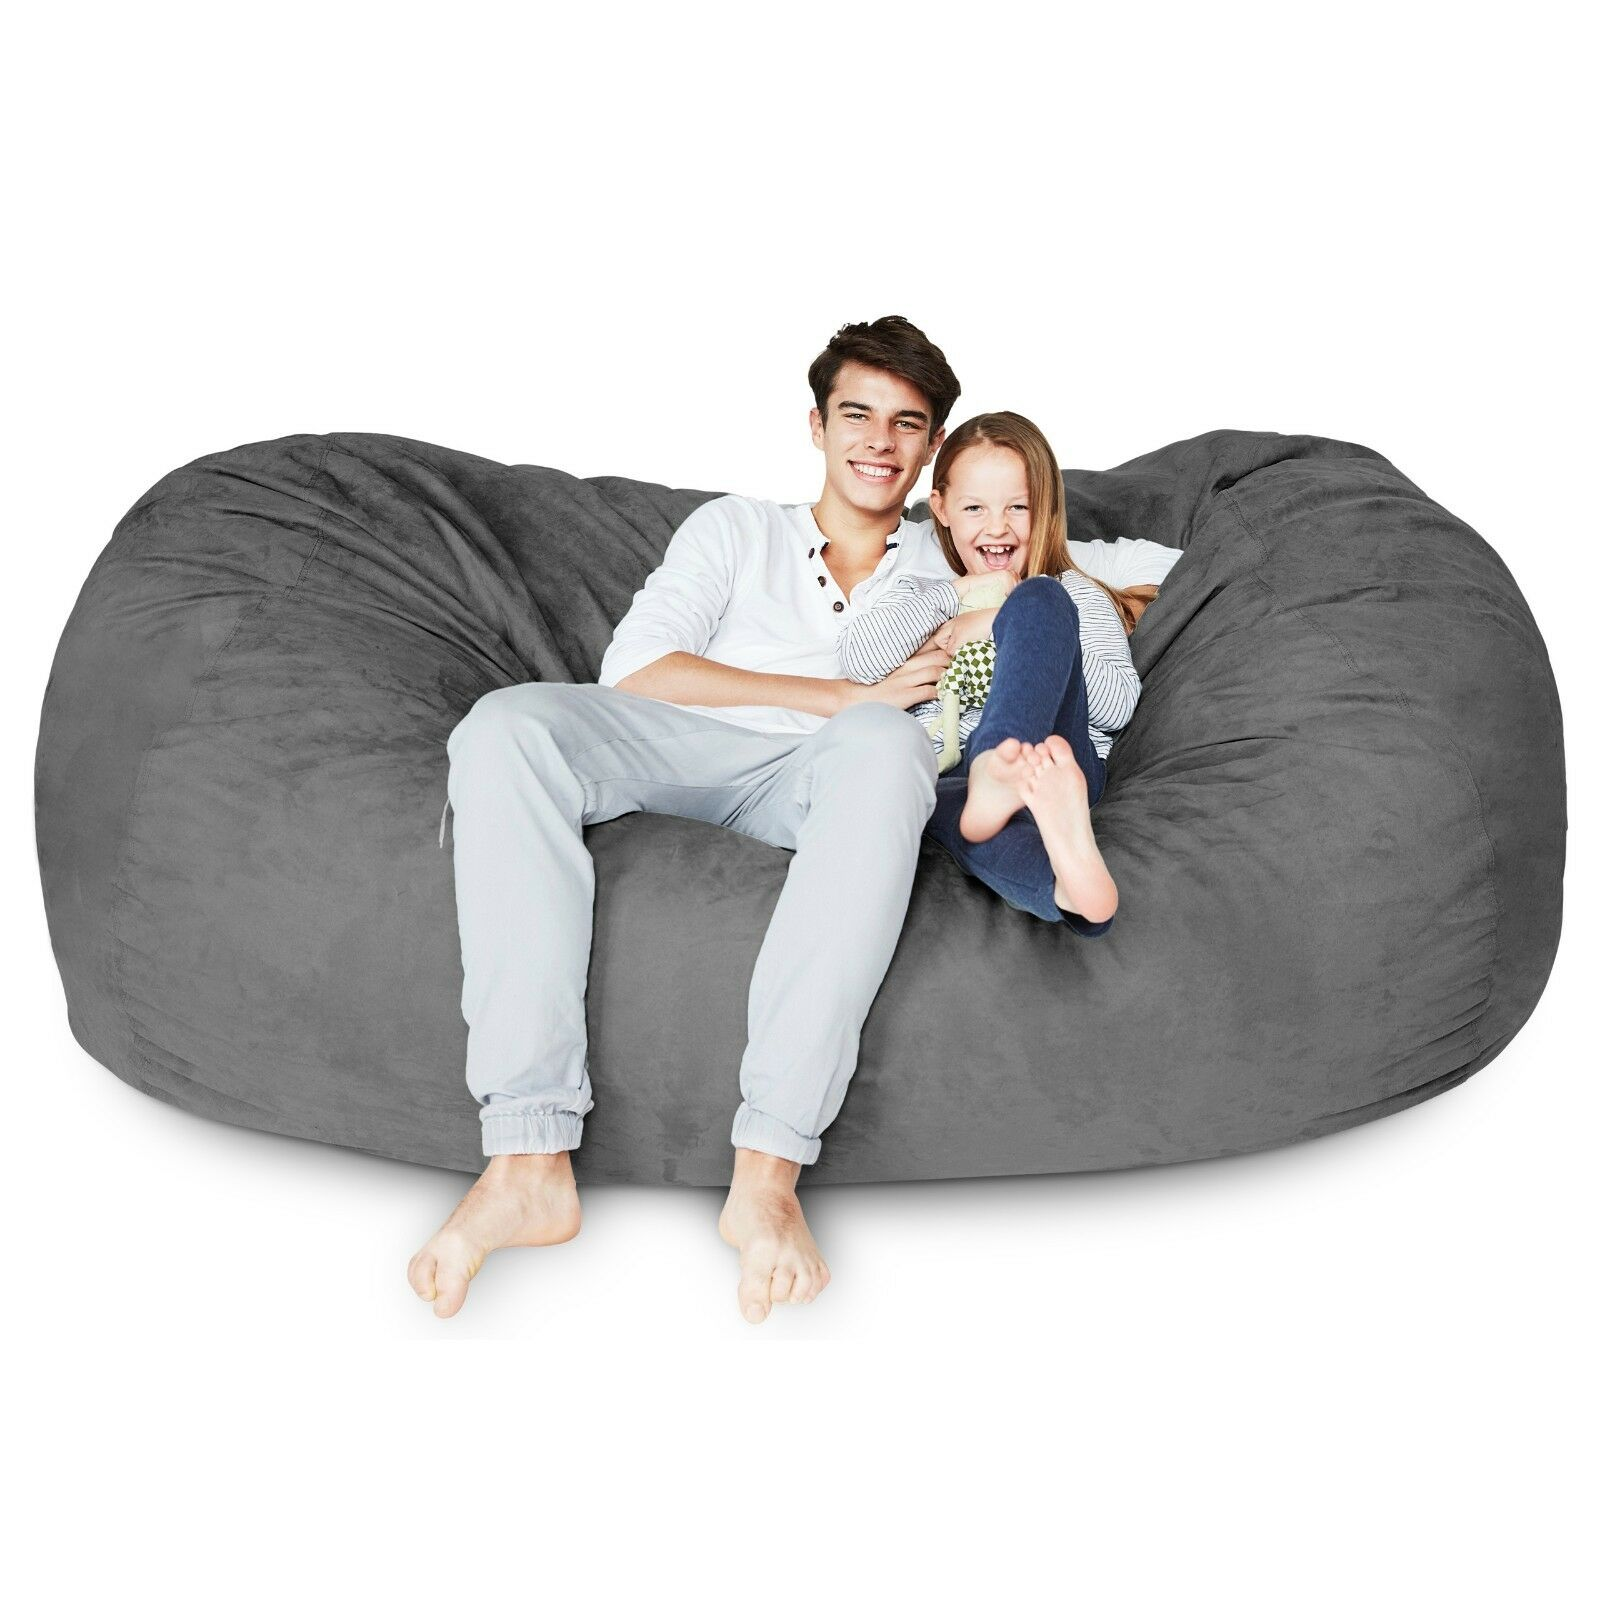 Surprising Foam Filled Giant Xxl Bean Bag Chair Big Sofa Relax Seat Lounger Loveseat Couch Andrewgaddart Wooden Chair Designs For Living Room Andrewgaddartcom